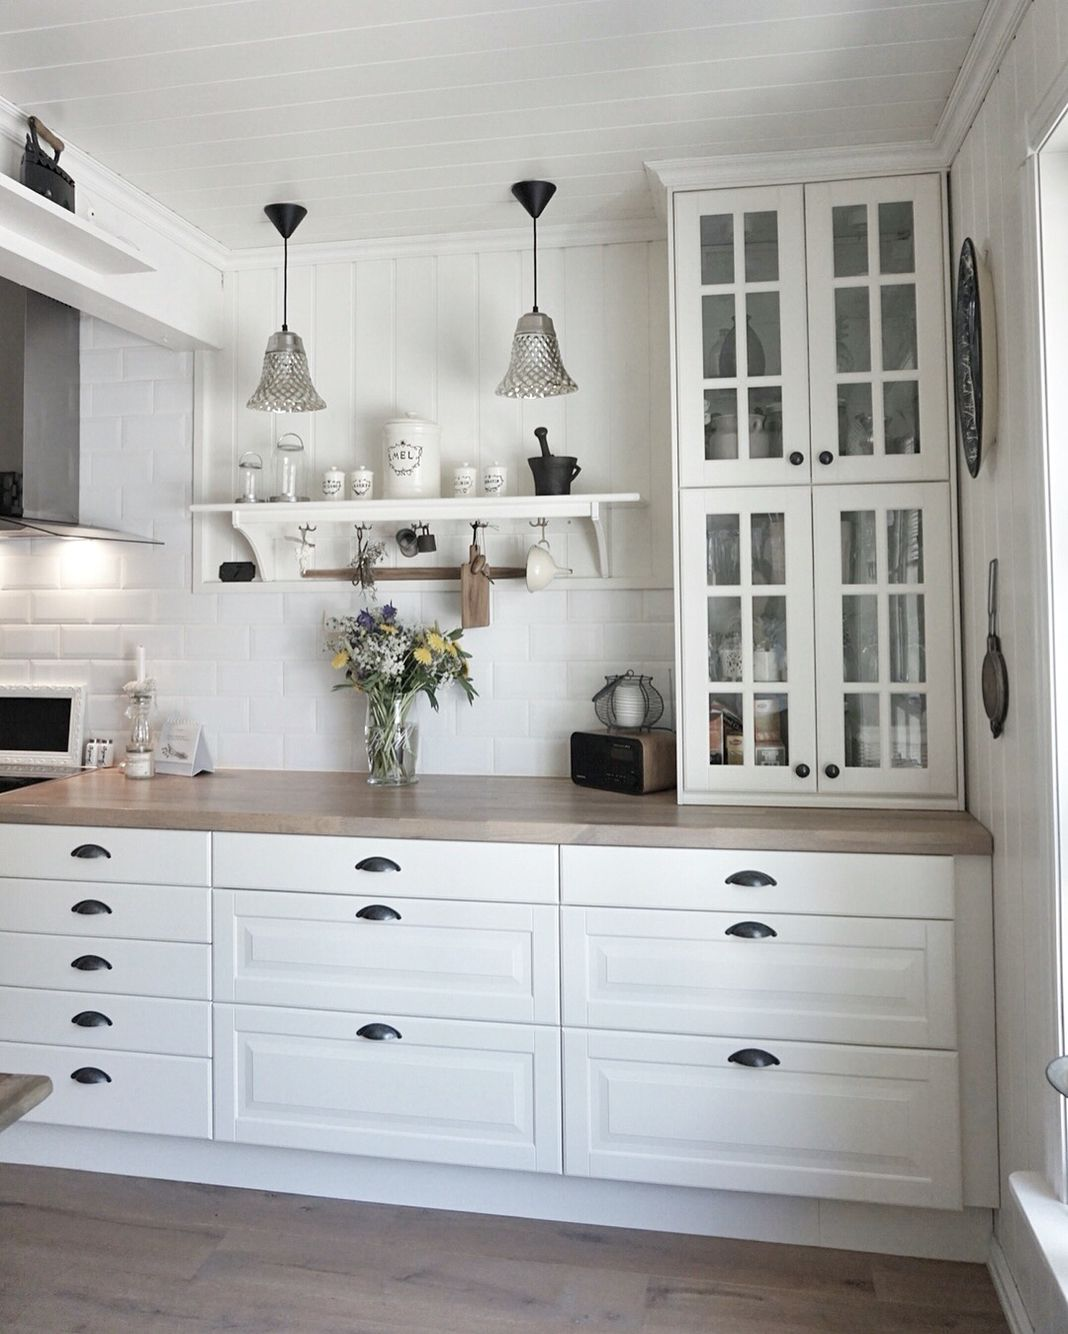 Wunderbar #behindabluedoor #kitchen Ikea Kitchens, Ikea White Kitchen Cabinets,  Farmhouse